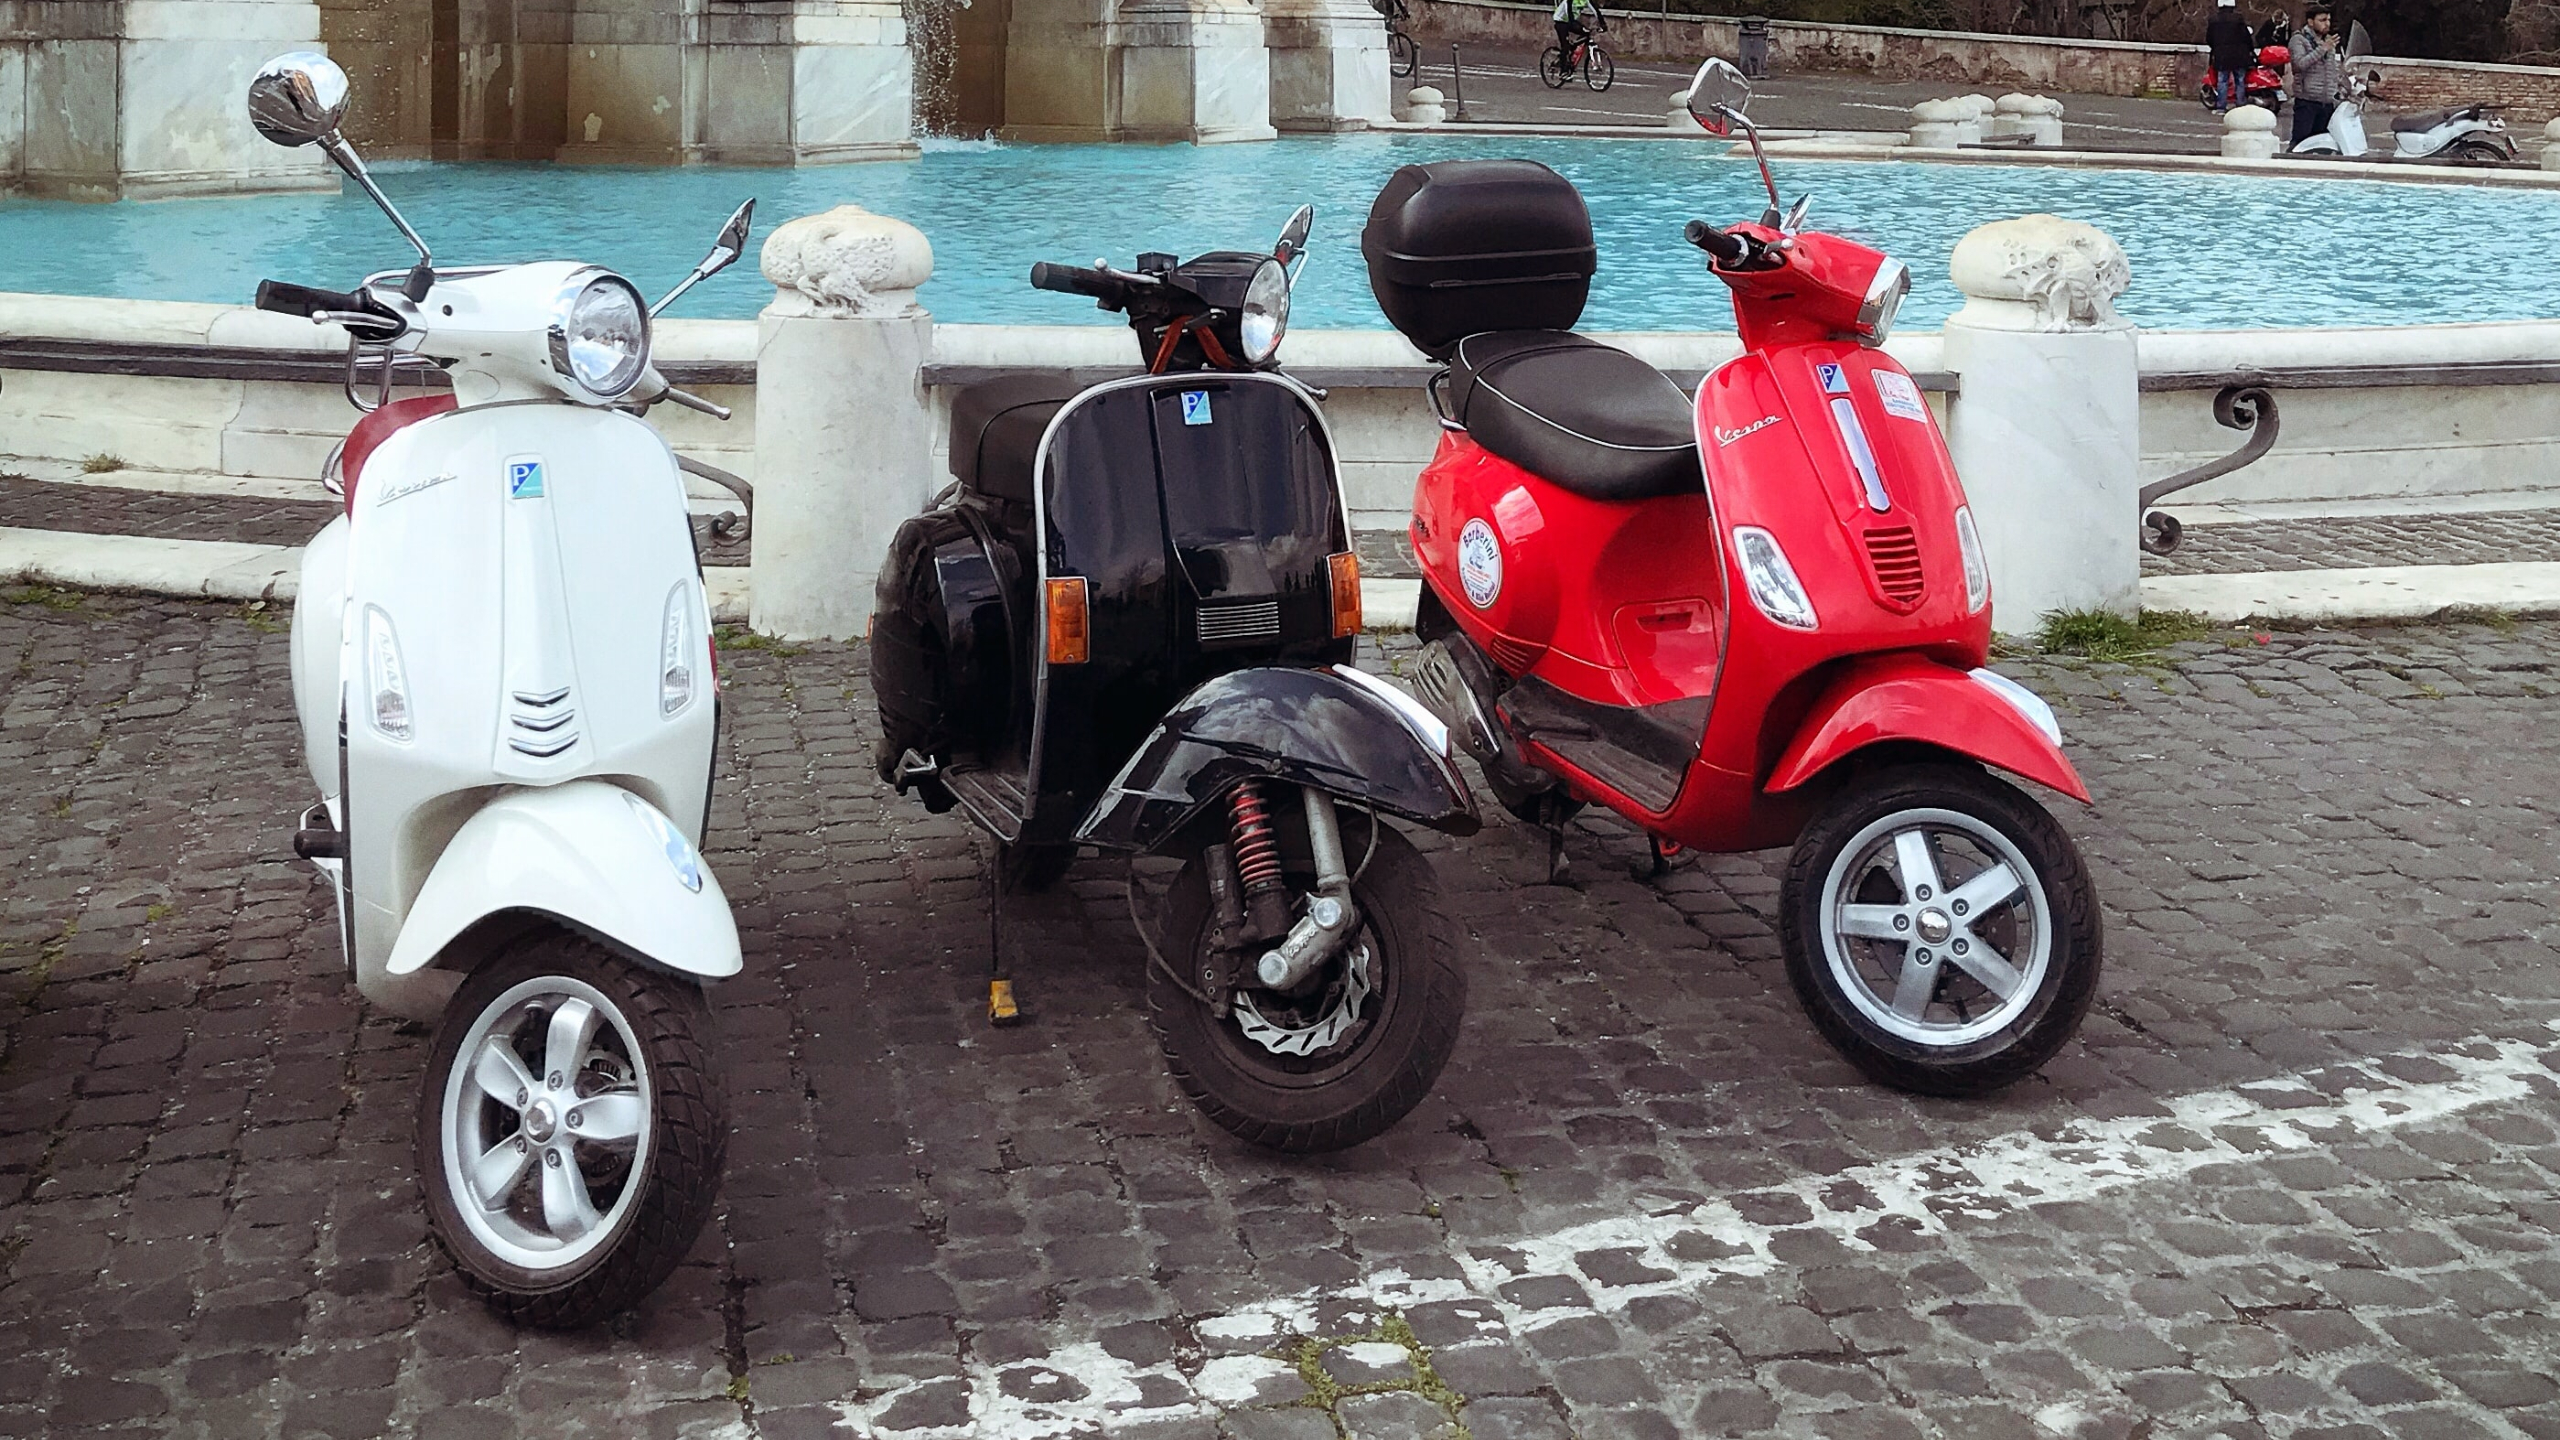 Three scooters lined up side by side in front of a fountain